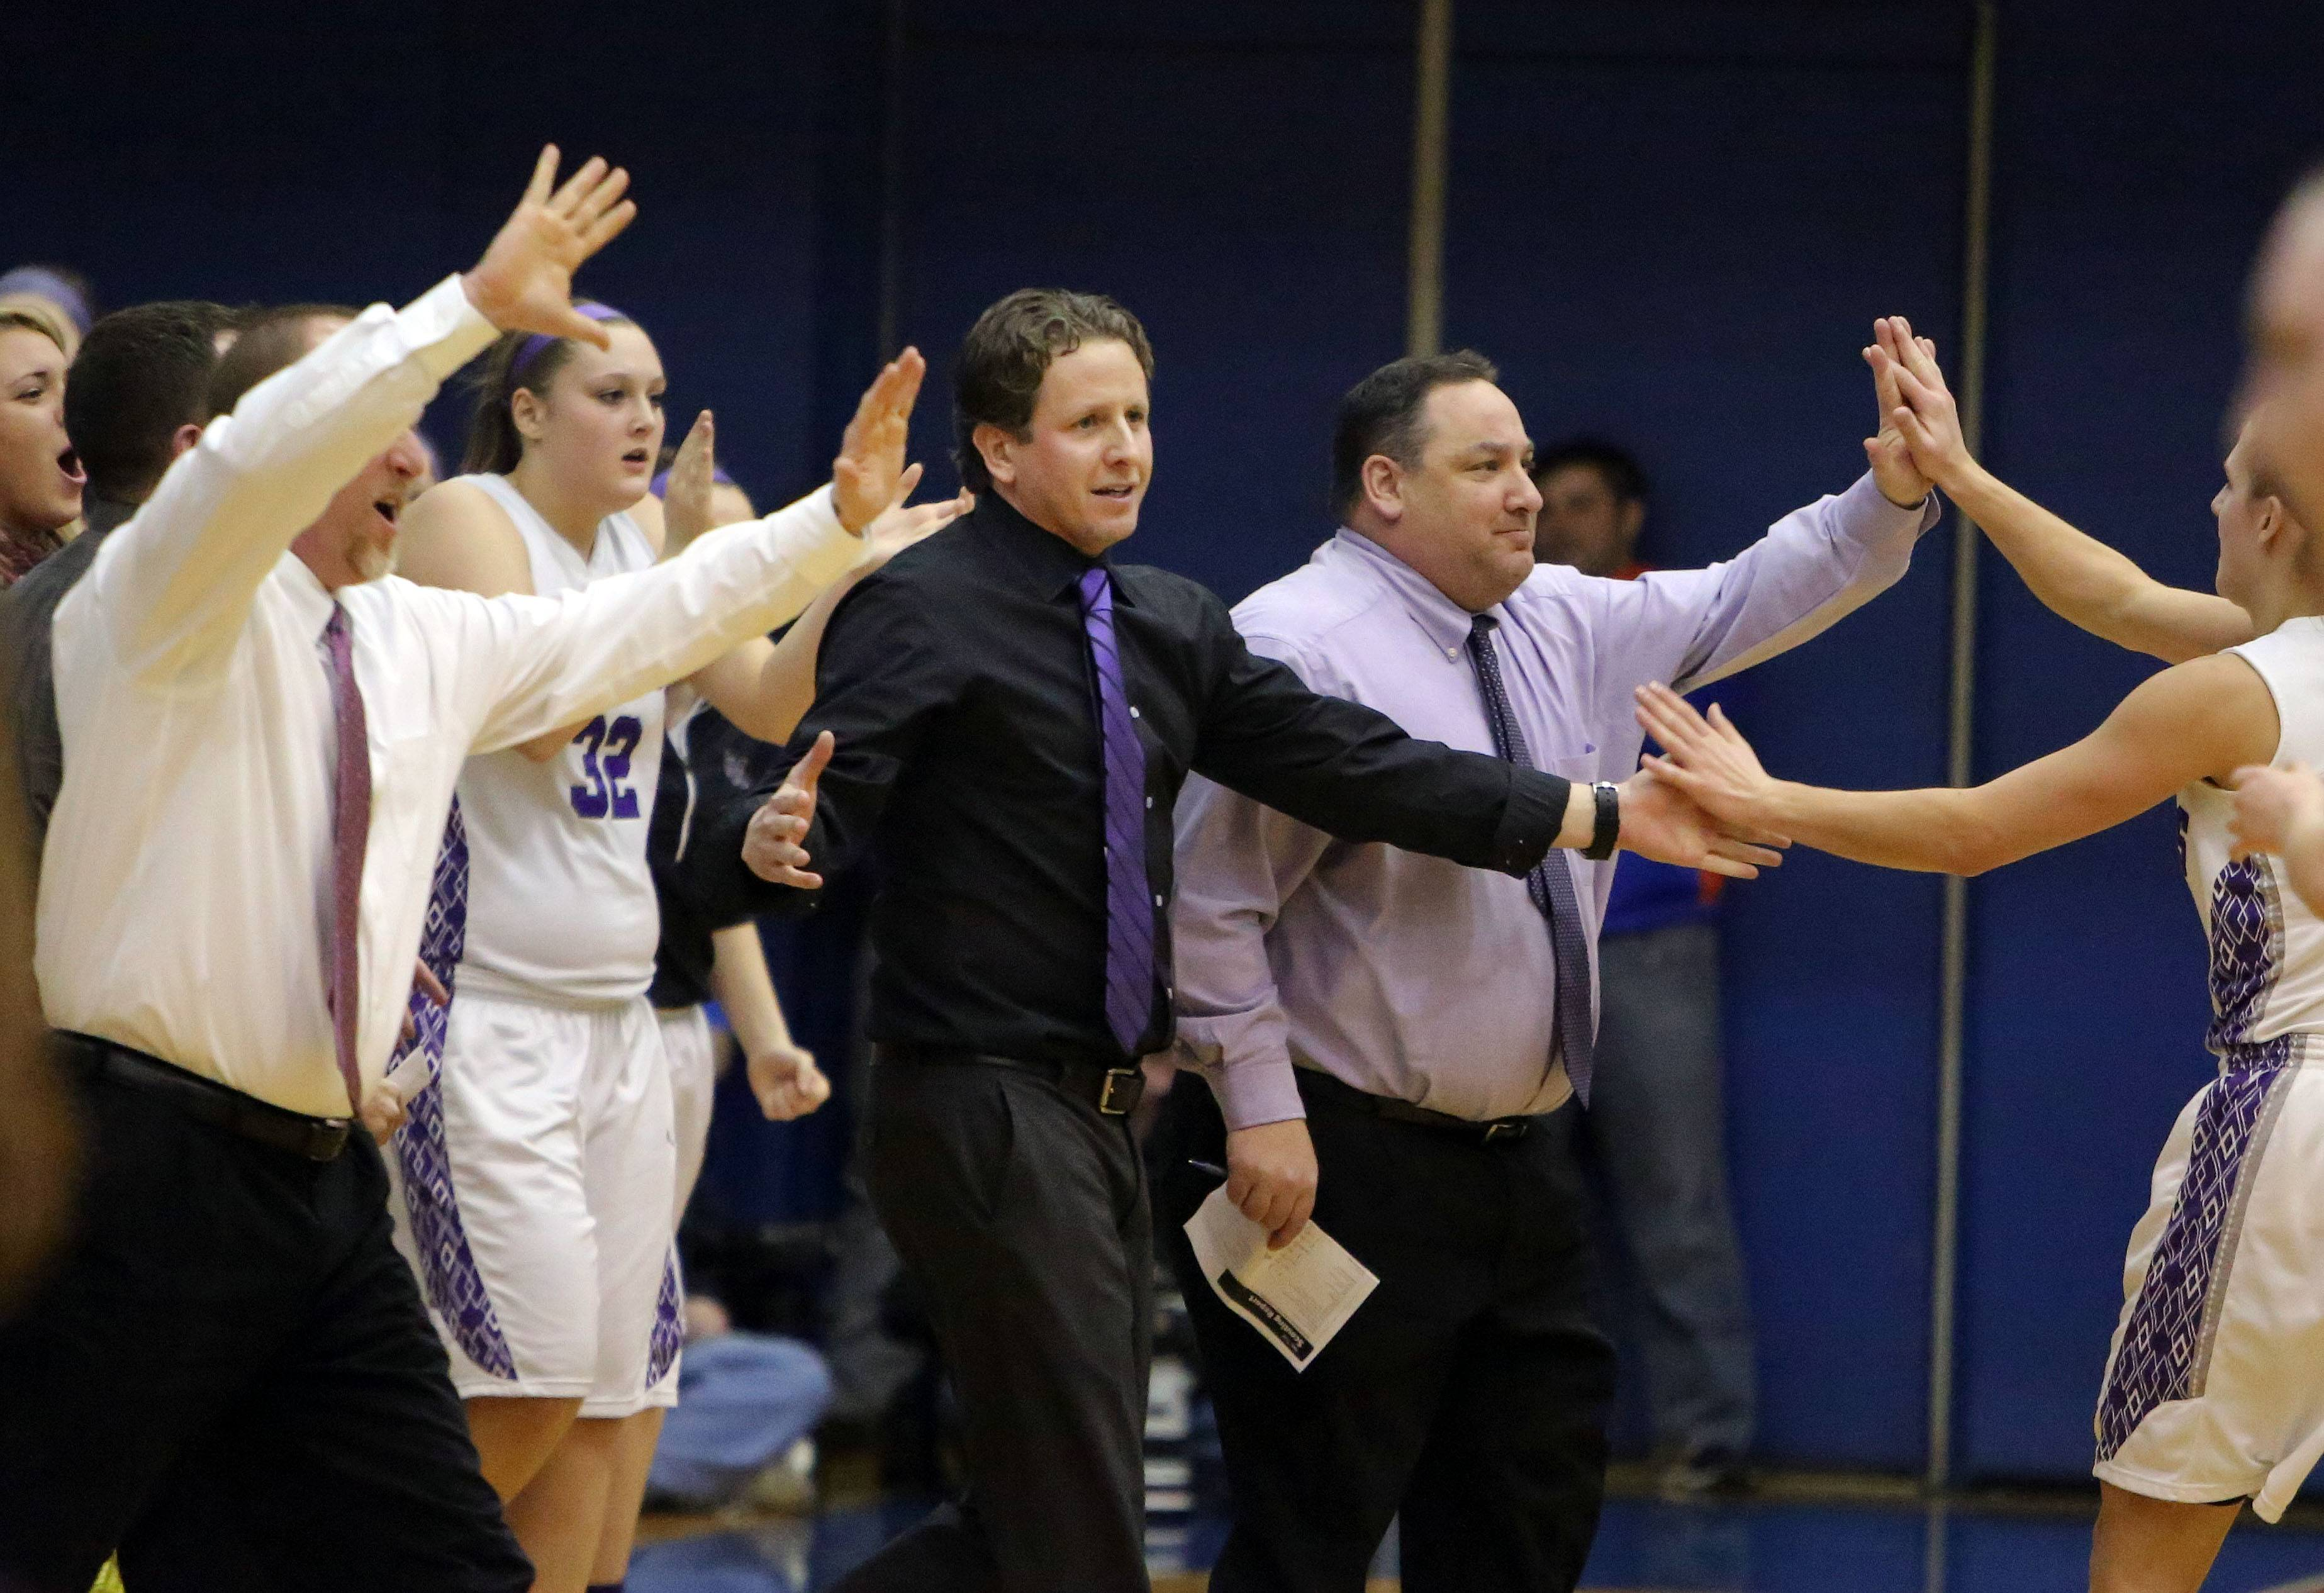 Rolling Meadows coach Ryan Kirkorsky cheers for his team during the Class 4A supersectional against New Trier at Hoffman Estates on Monday.